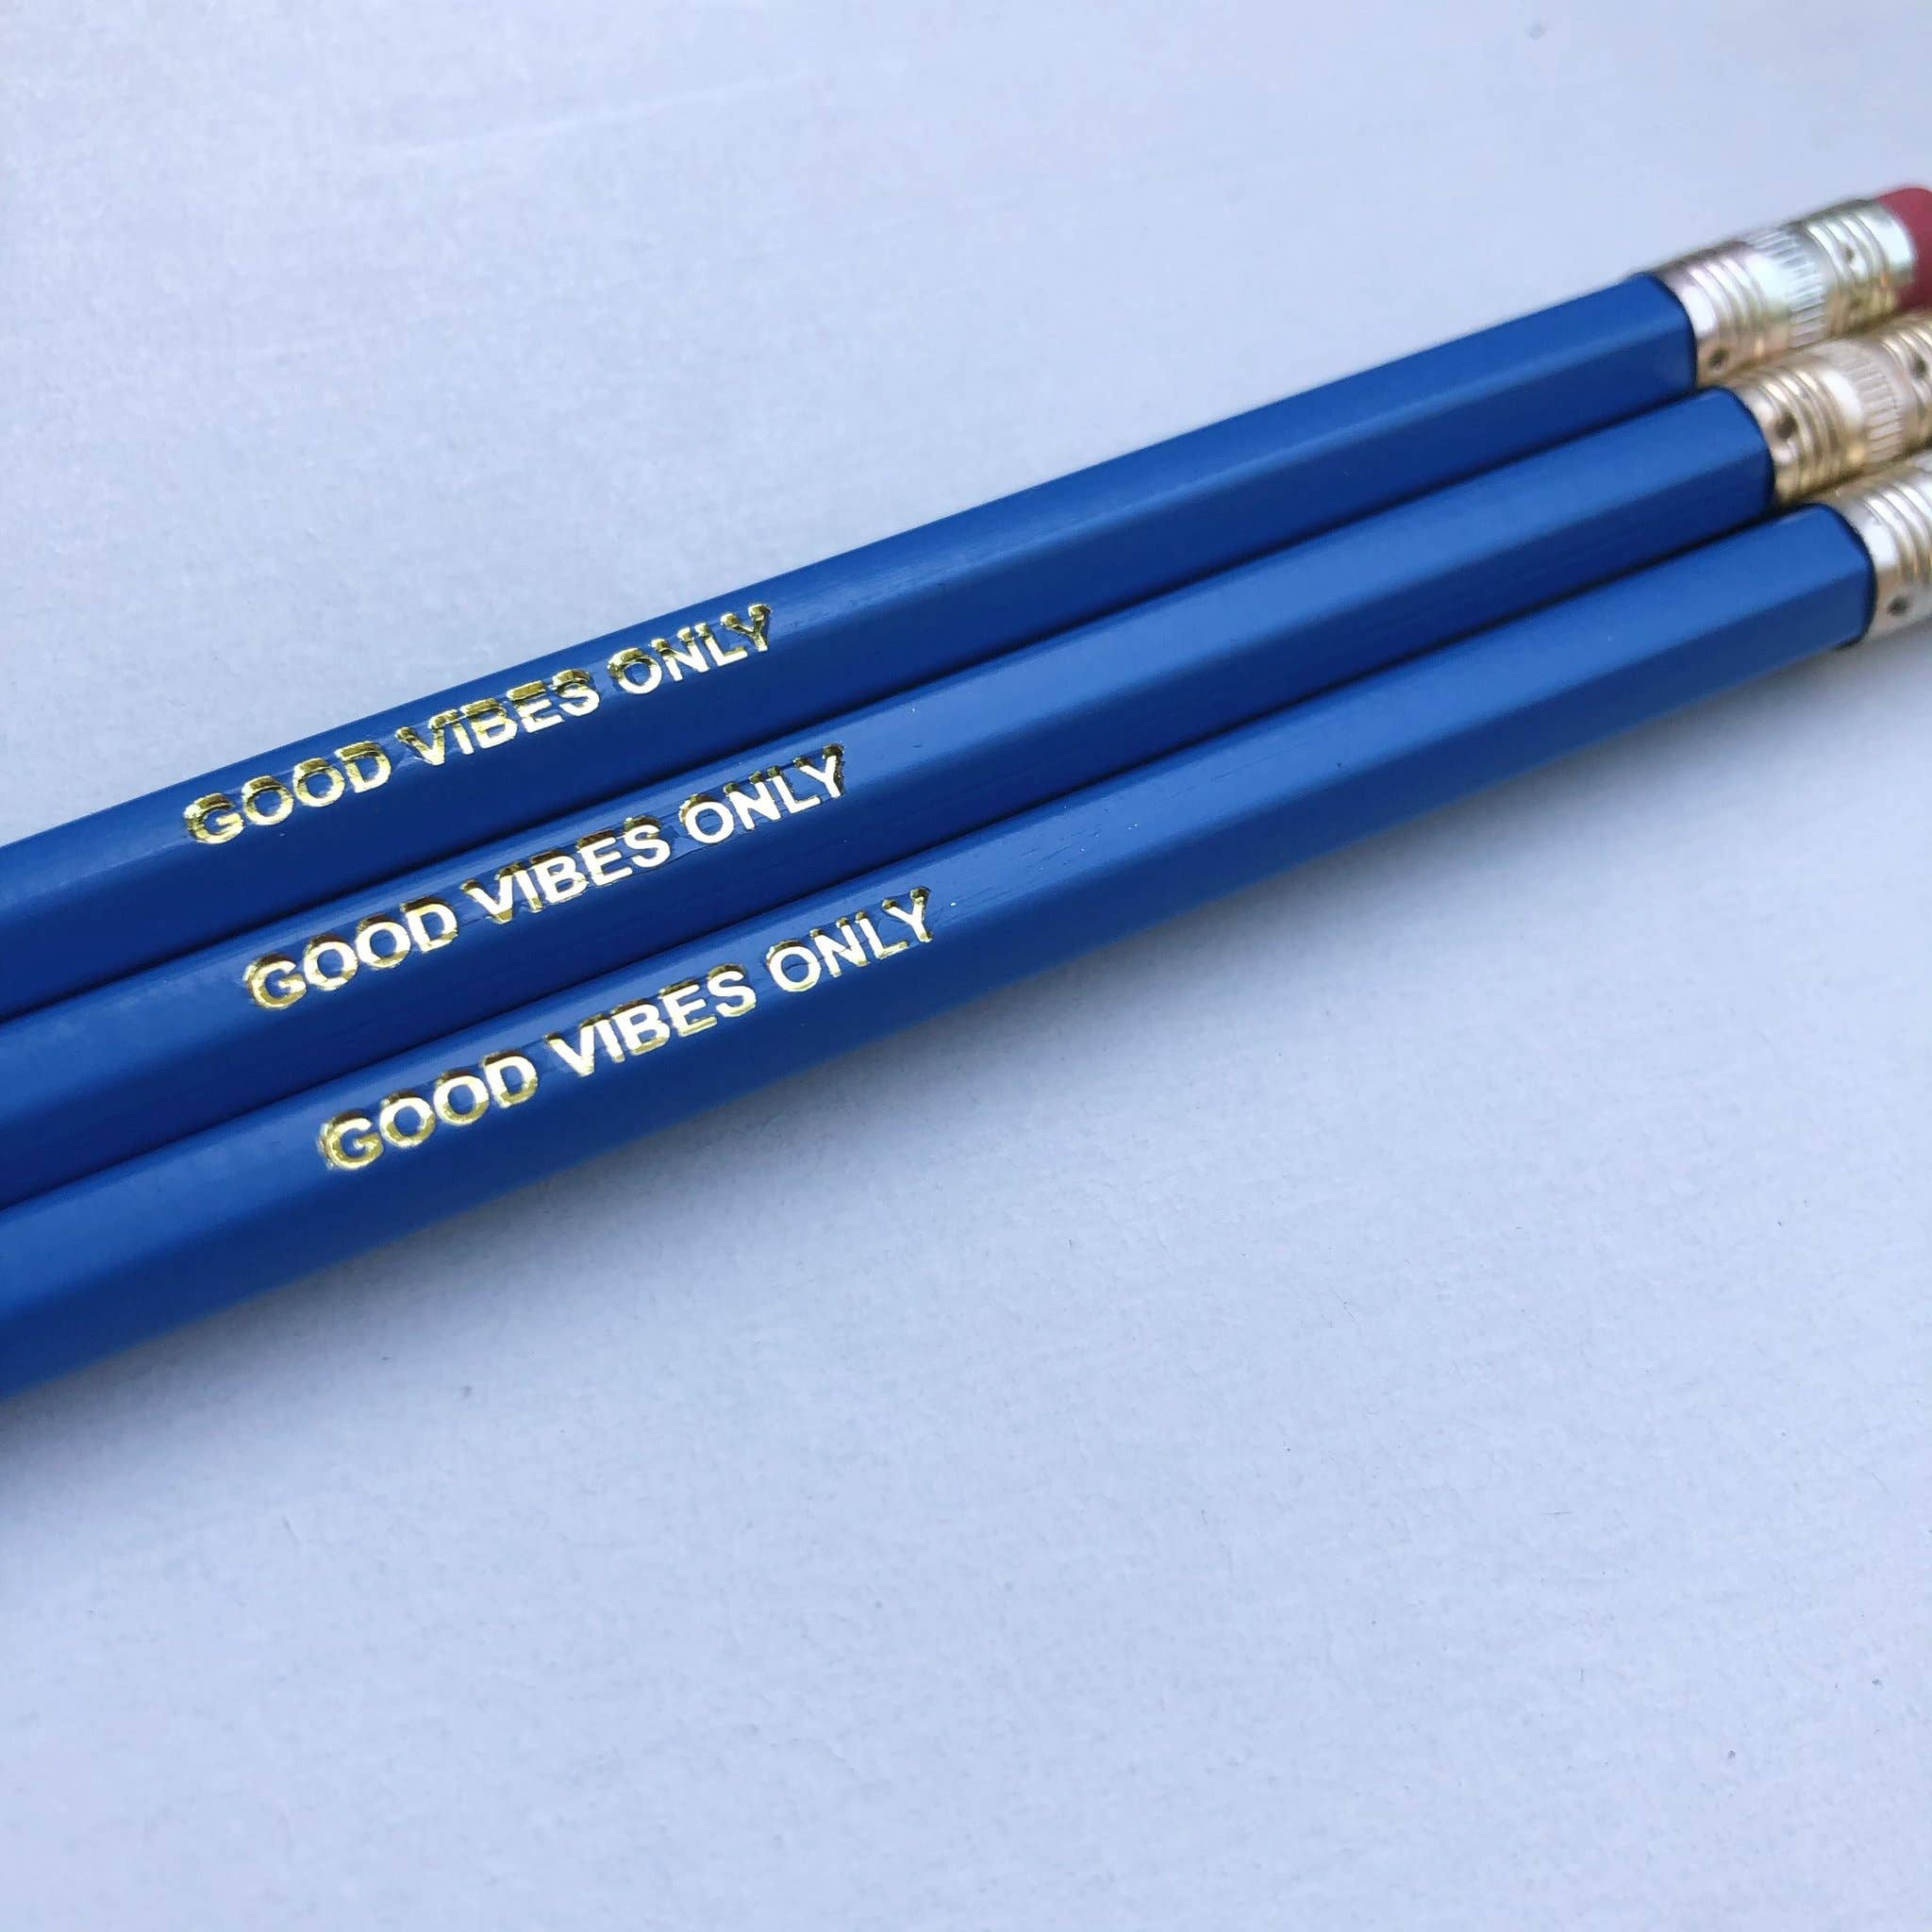 Good Vibes Only Pencil